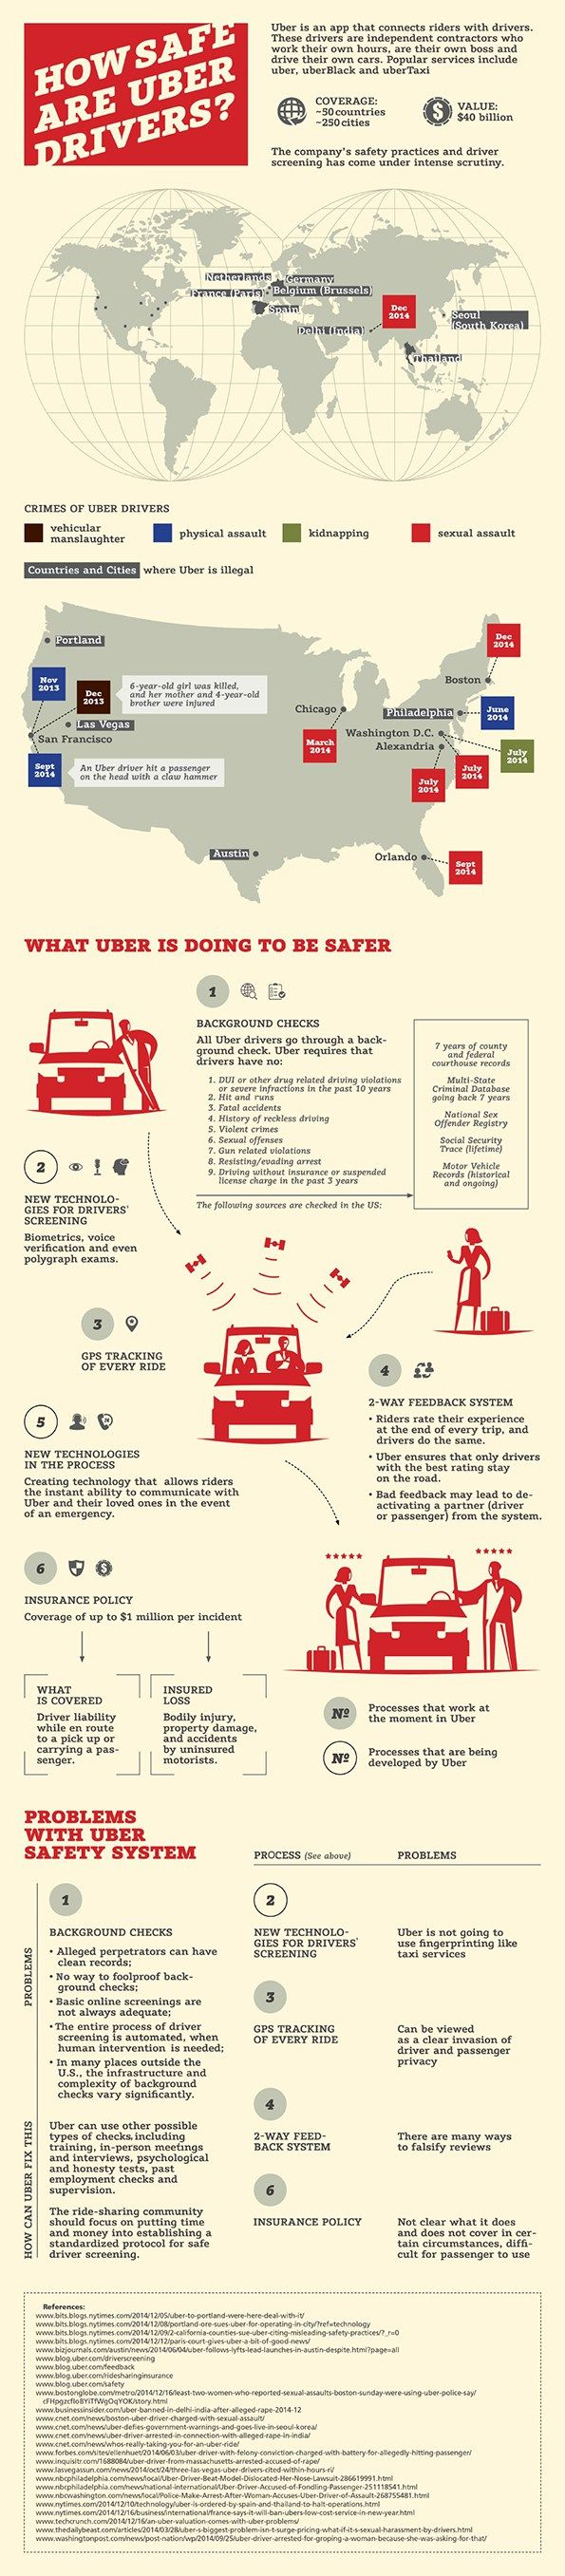 How Safe Are Uber Drivers?